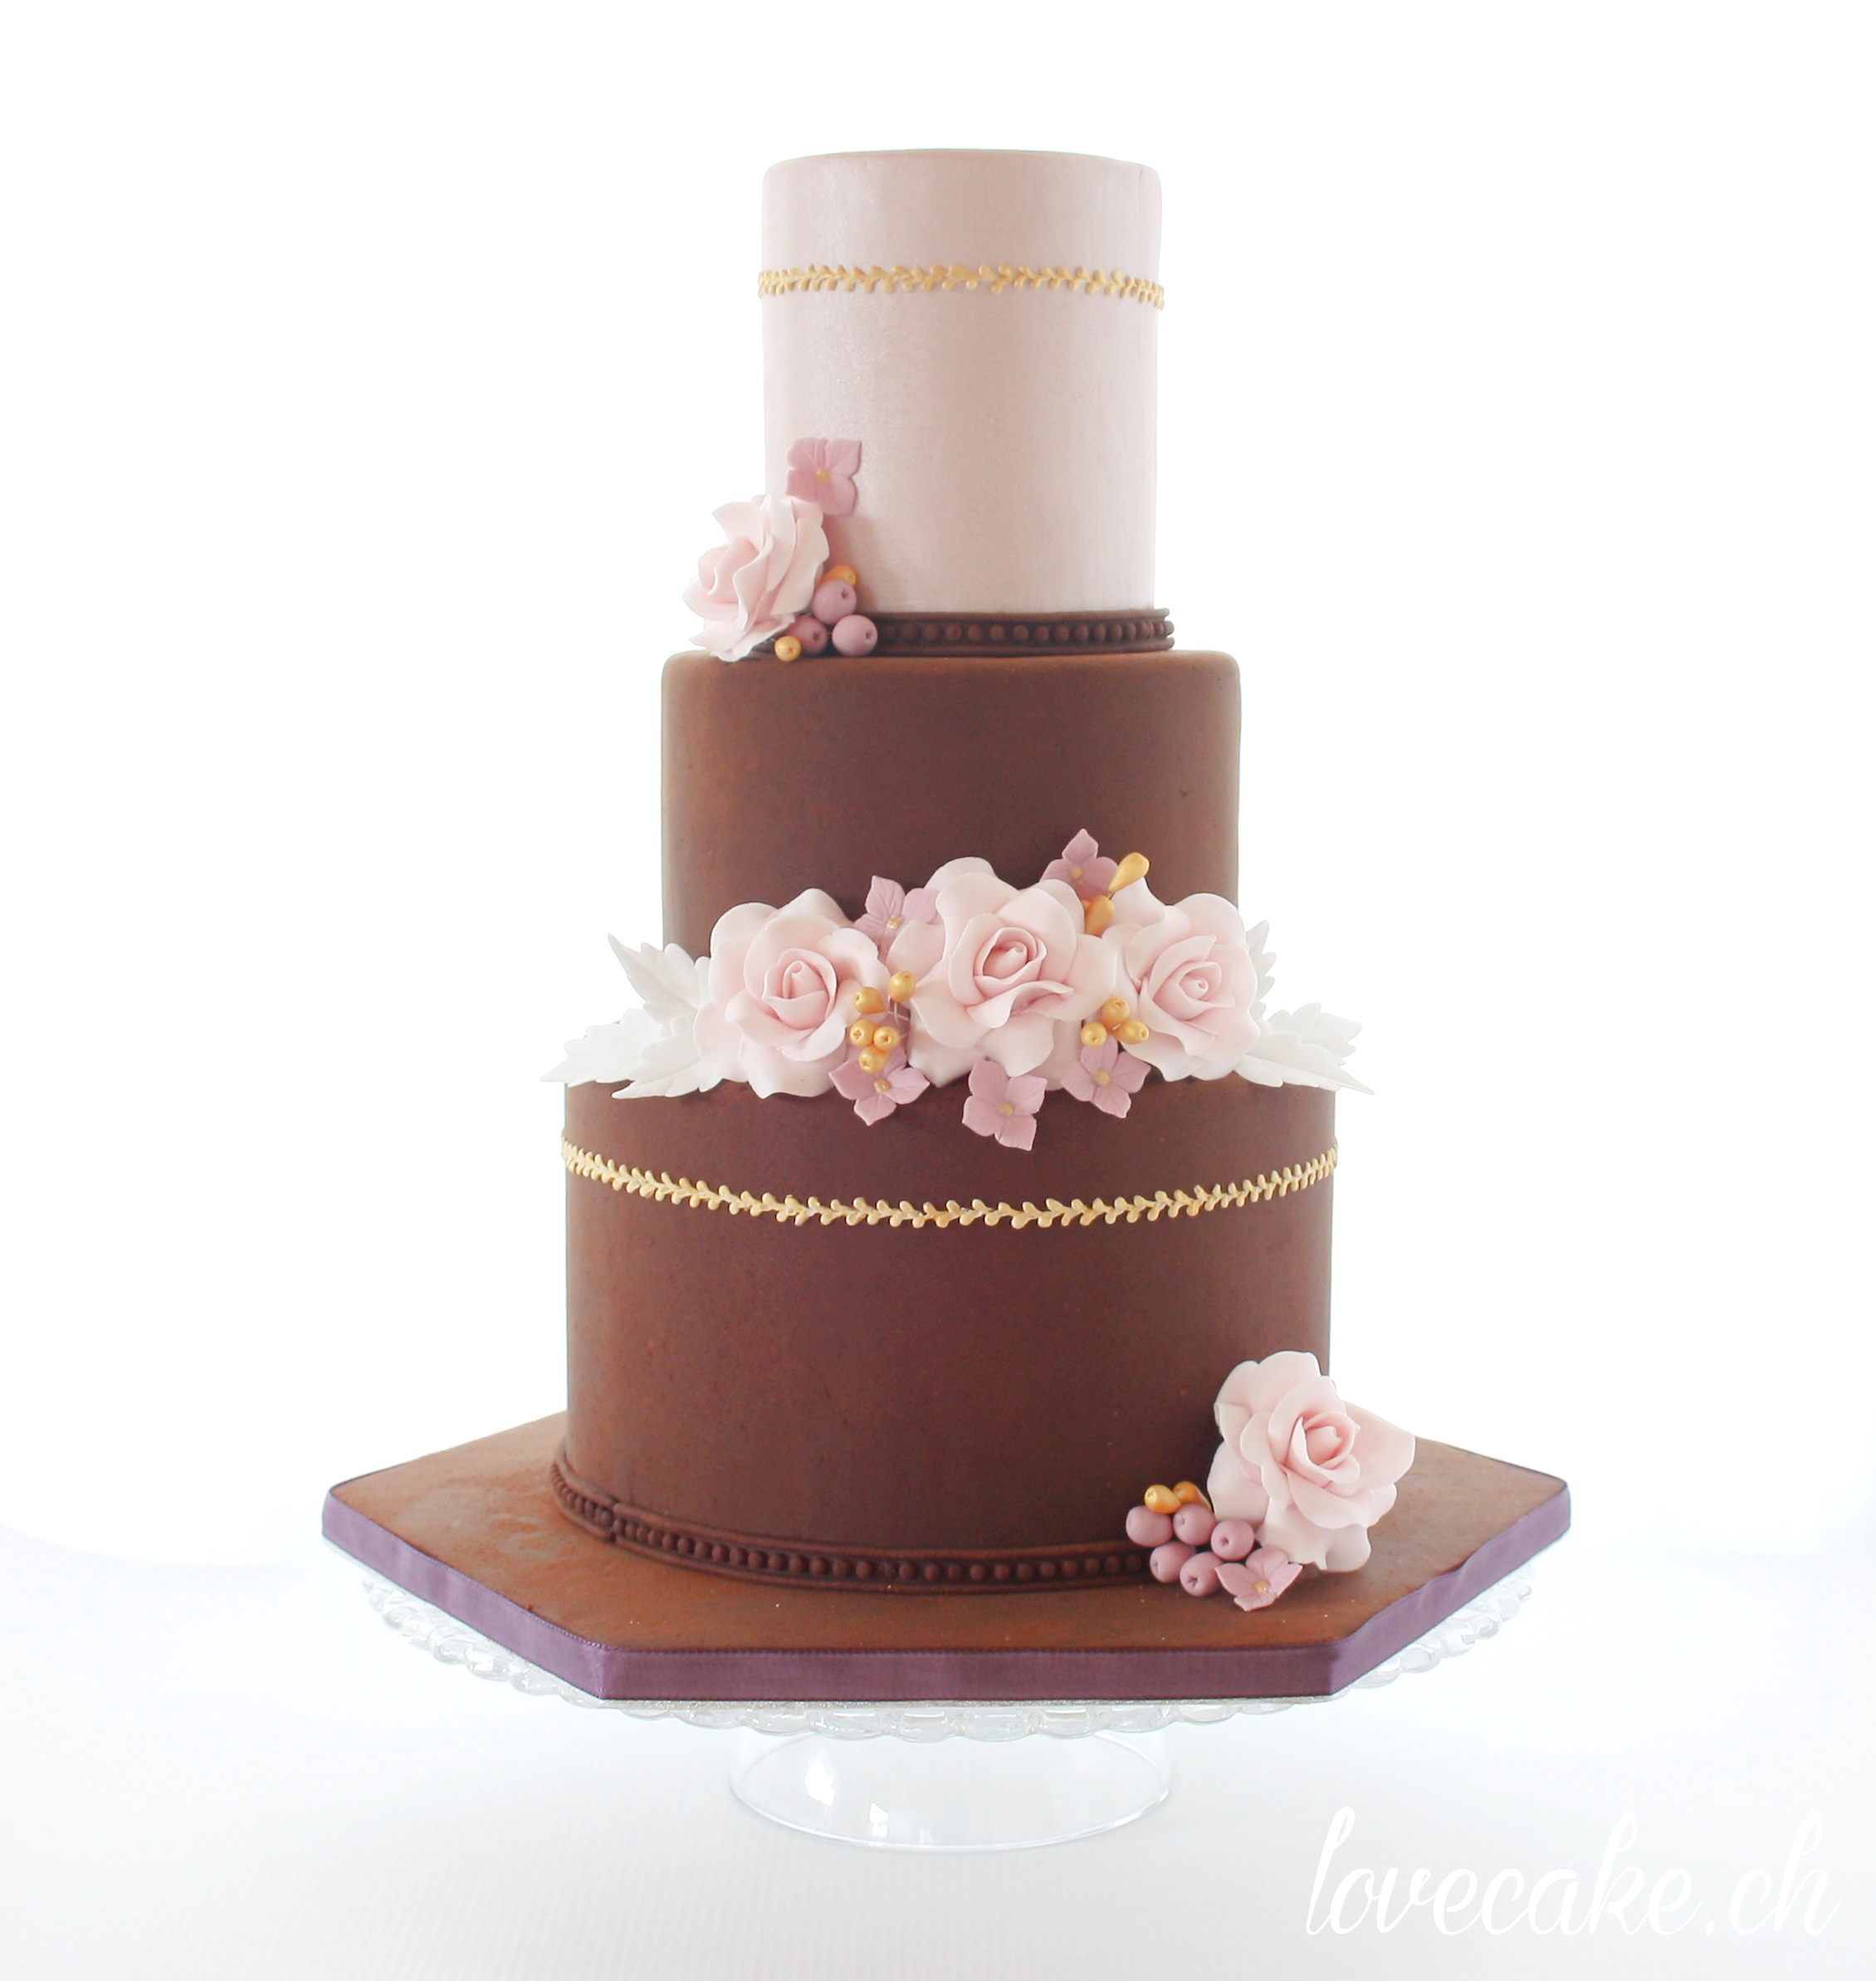 Chocolate and pink wedding cake with pink sugar flowers